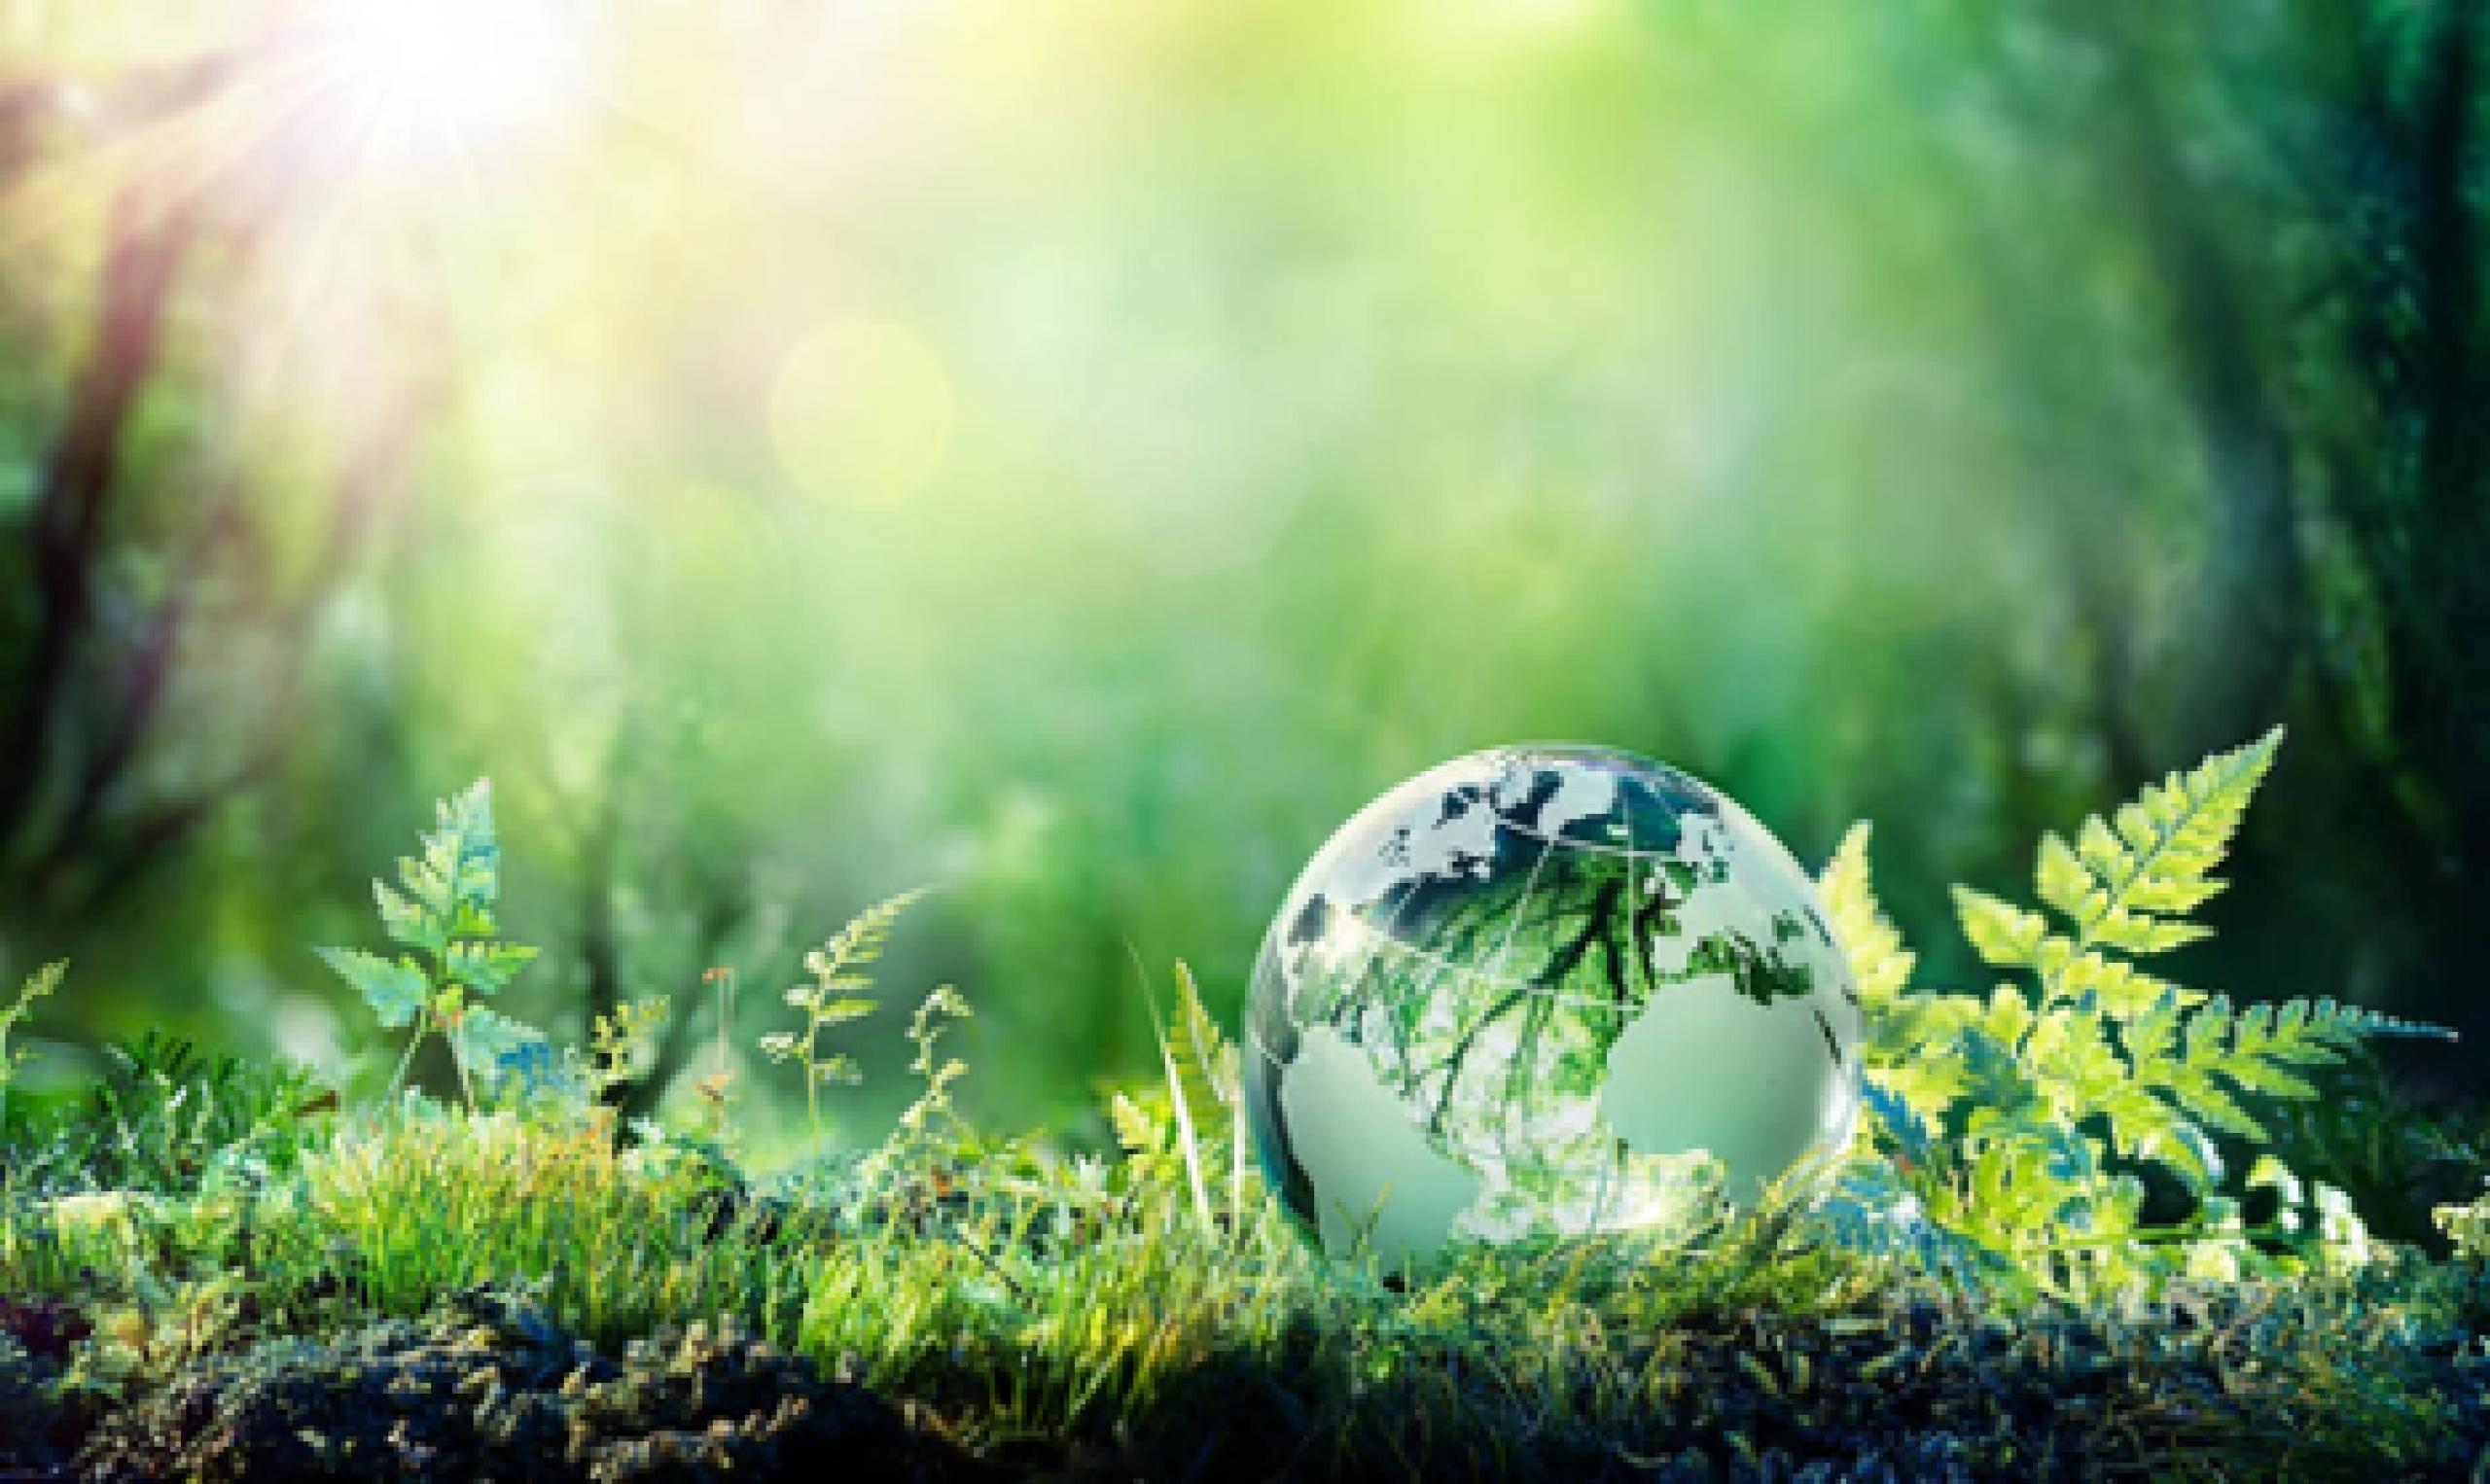 Close up photo of forest floor showing grass, ferns and small green globe.